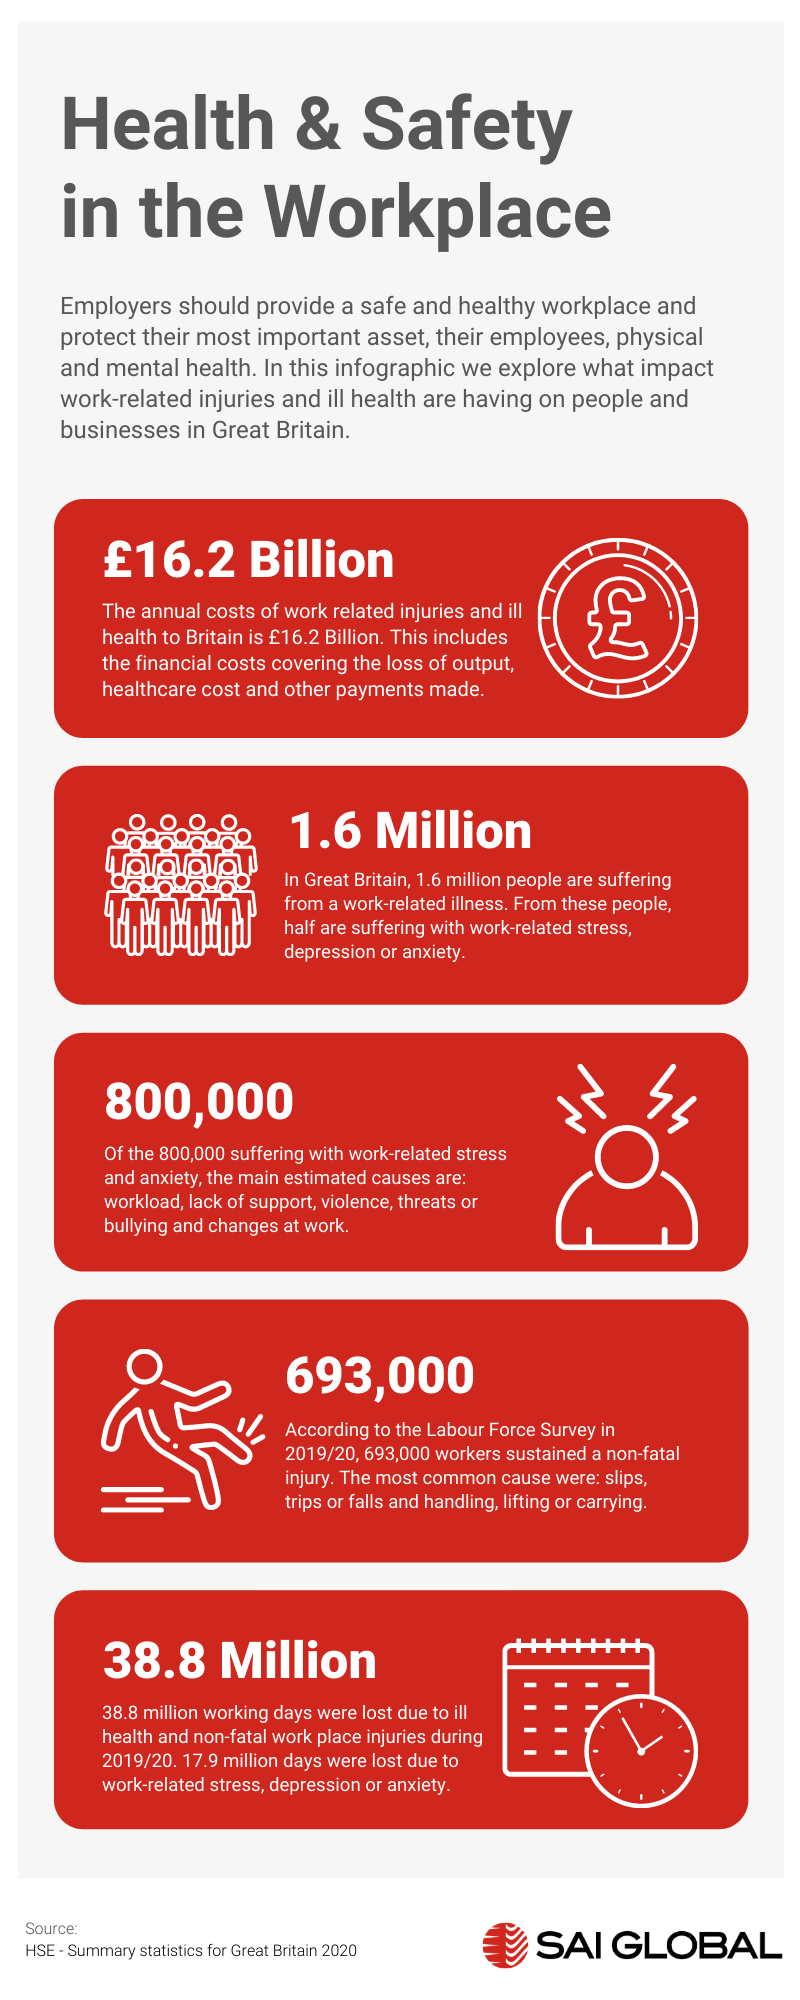 Infographic showing health and safety statistics in Great Britain